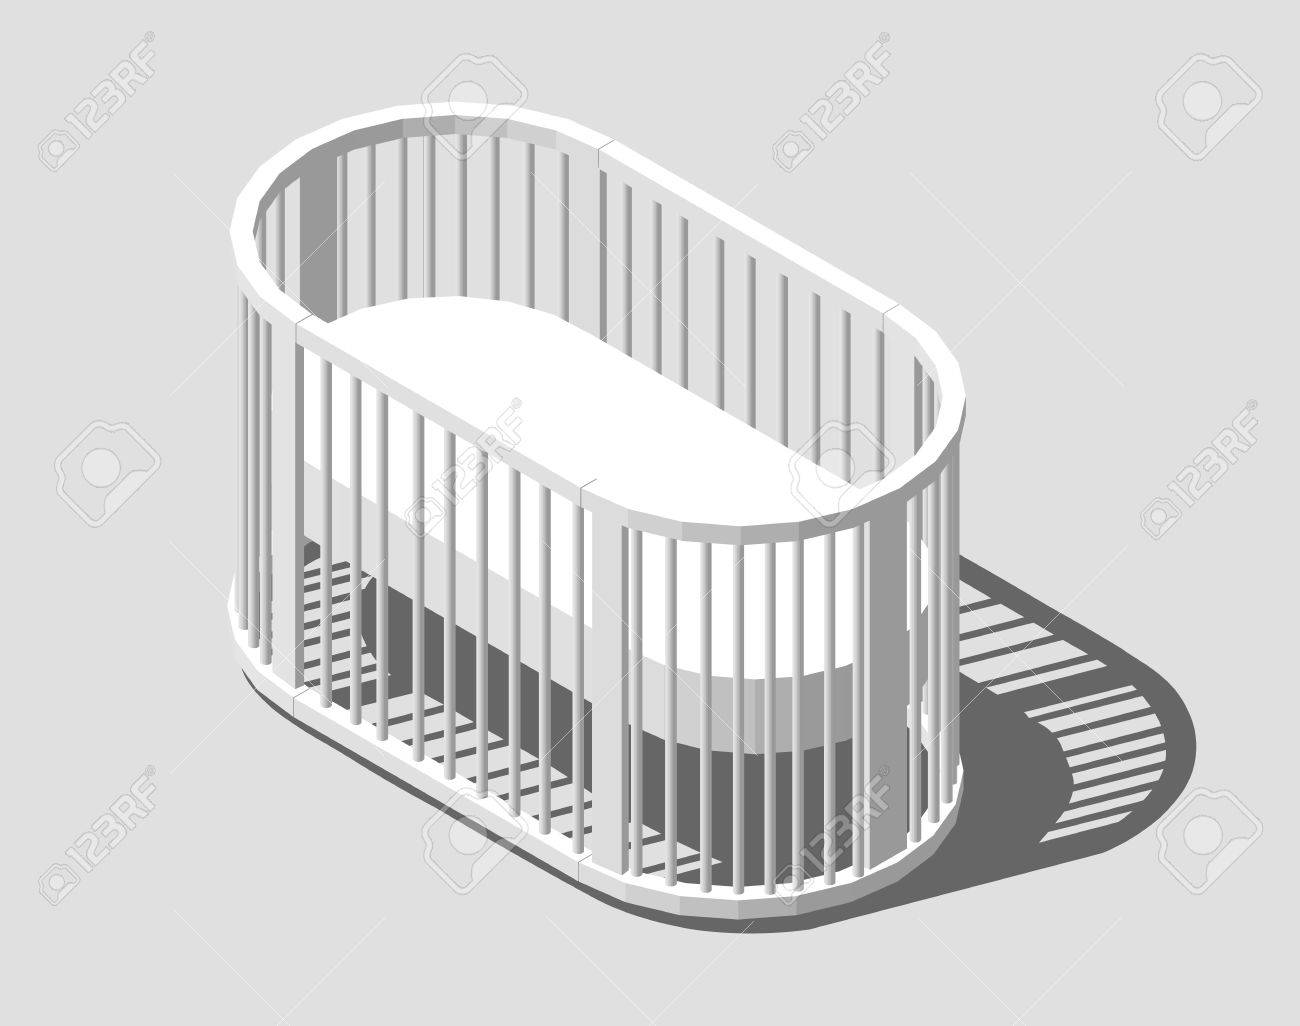 size crib cool century baby cribs modern nursery full best furniture sale mid minimalist under of for clearance bedroom